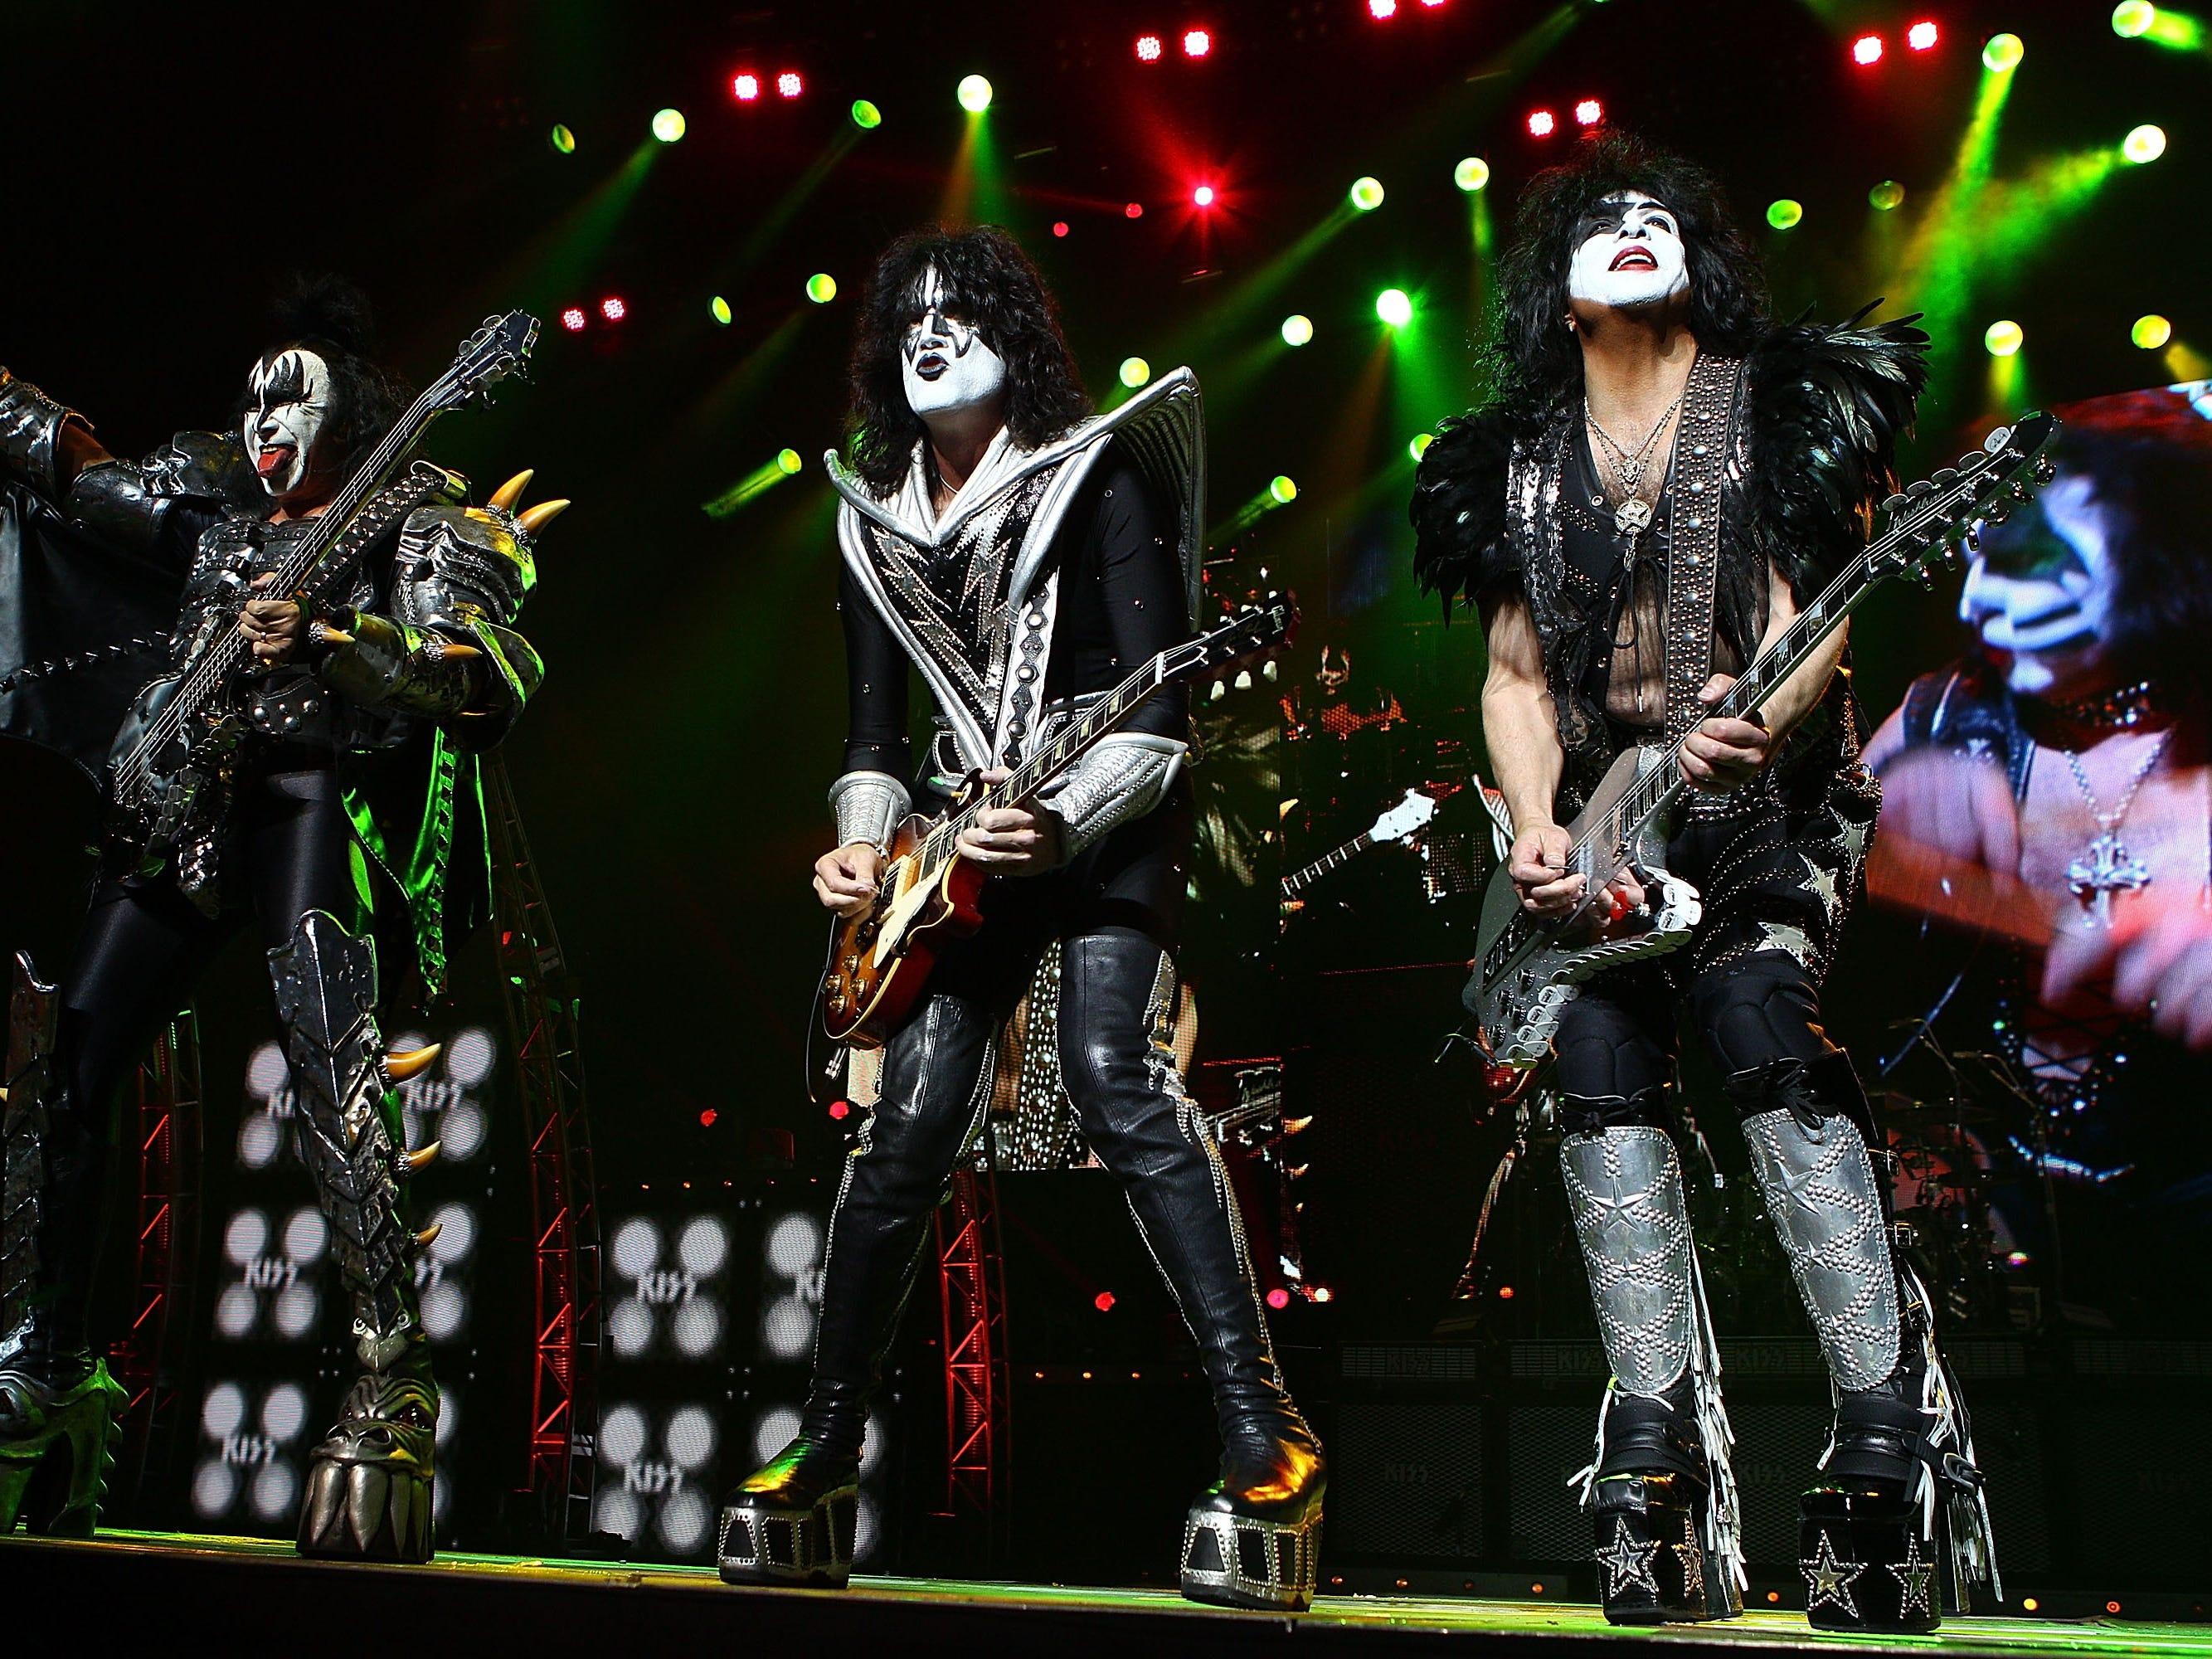 PERTH, AUSTRALIA - FEBRUARY 28:  KISS perform live on stage as part of their Monster Tour with Motley Crue and Thin Lizzy at Perth Arena on February 28, 2013 in Perth, Australia.  (Photo by Paul Kane/Getty Images)